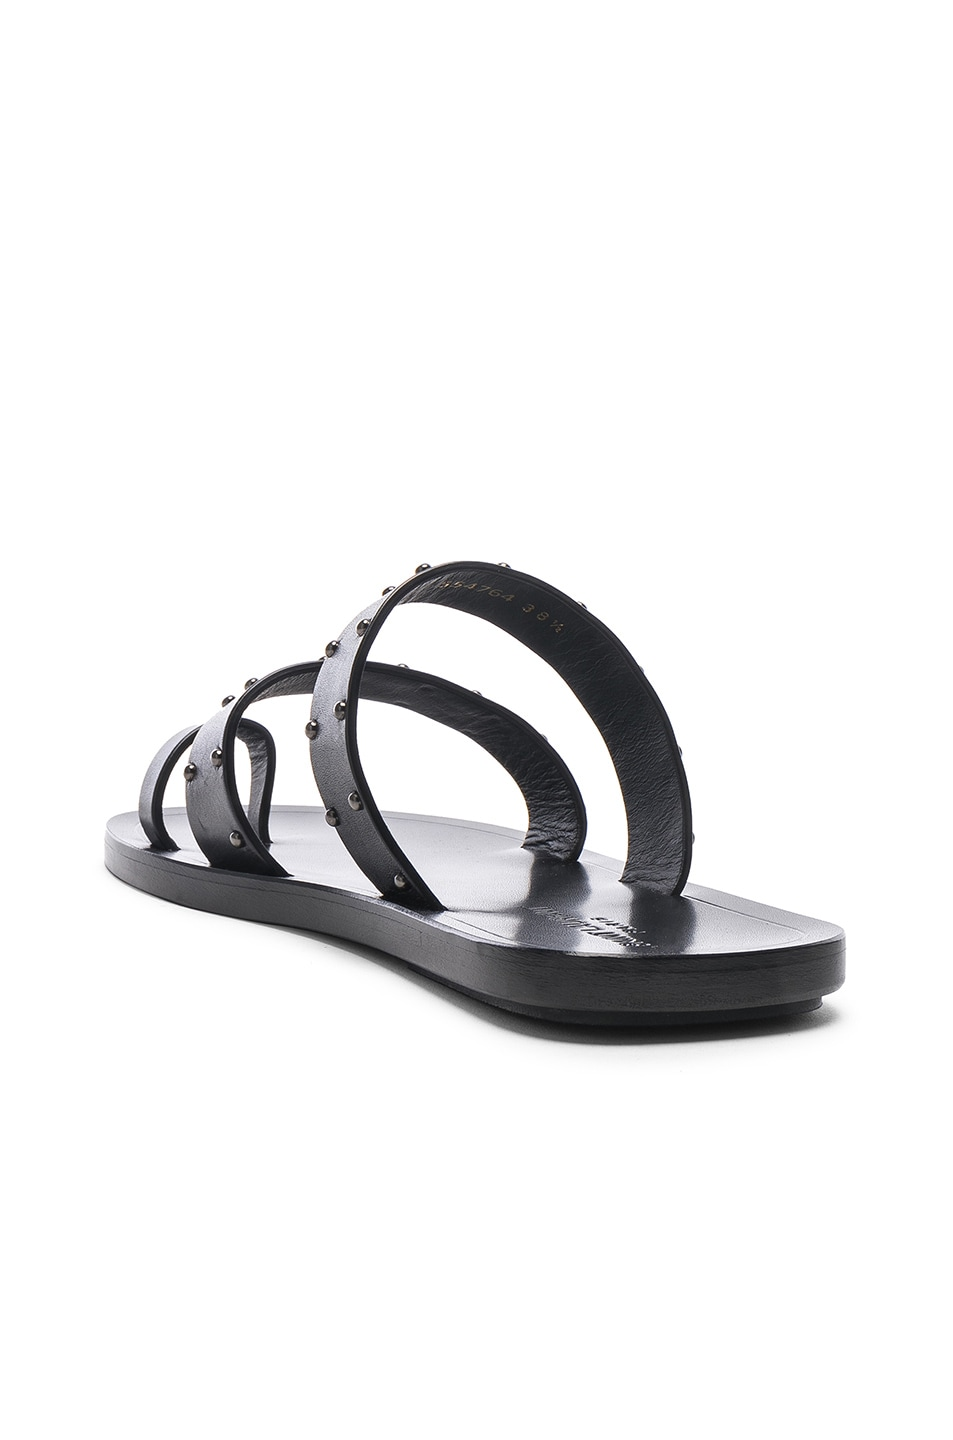 Image 3 of Saint Laurent Ashton Stud Sandals in Black